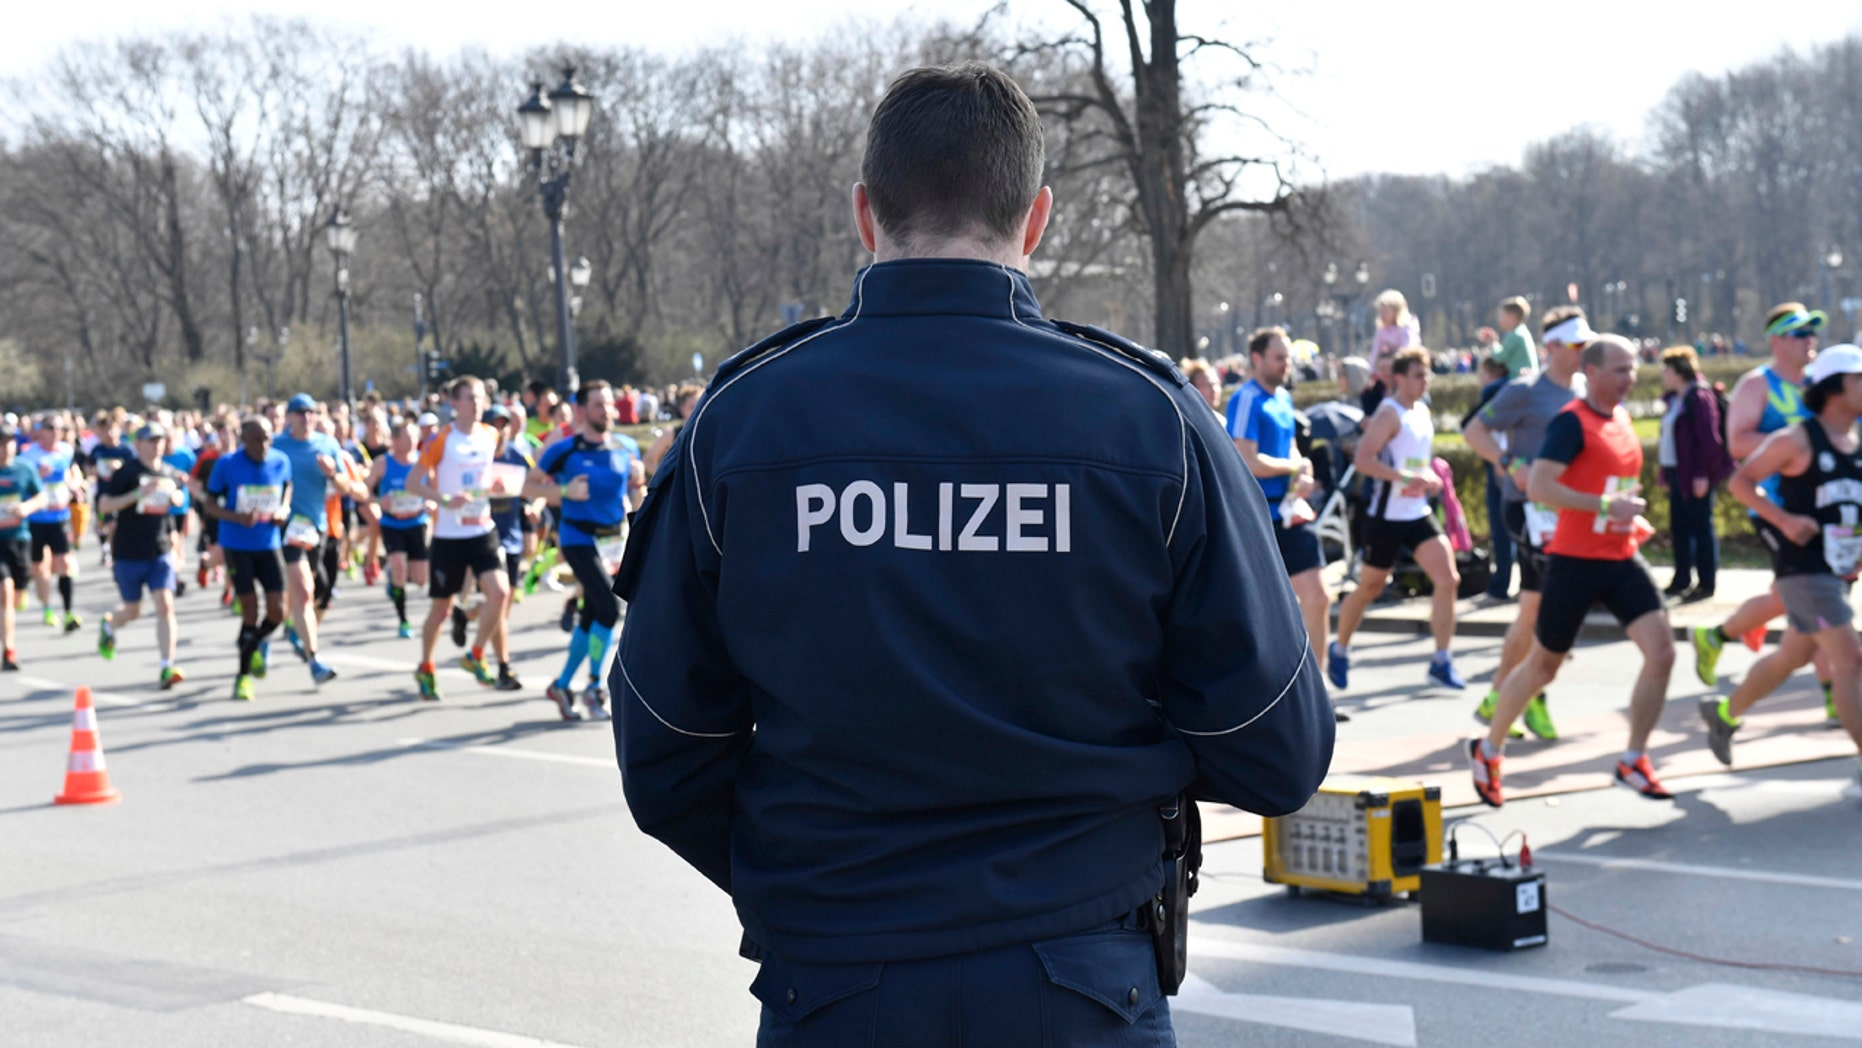 Police guard during the half marathon run in Berlin, Sunday, April 8, 2018. The German daily Die Welt is reporting that police have foiled a knife attack on a half-marathon in Berlin.